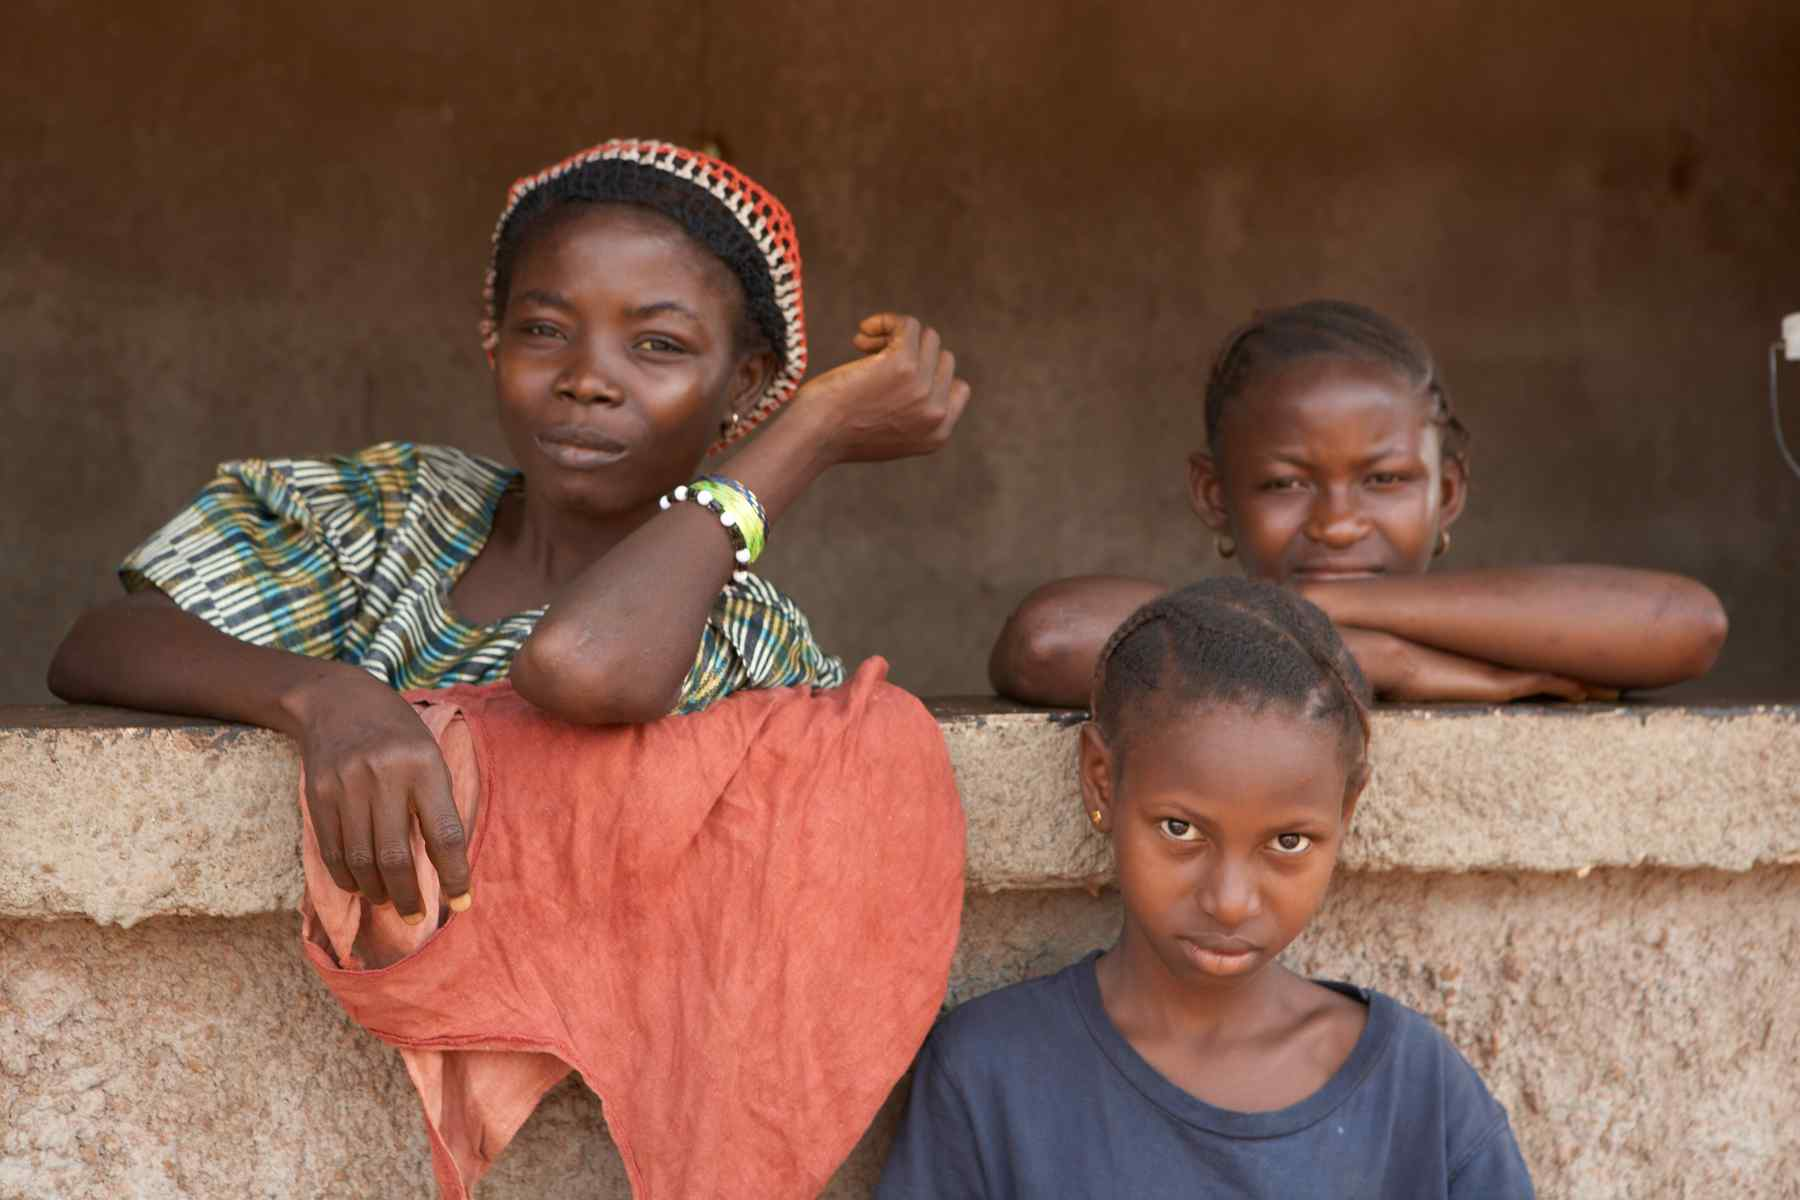 Children in Sierra Leone, Africa